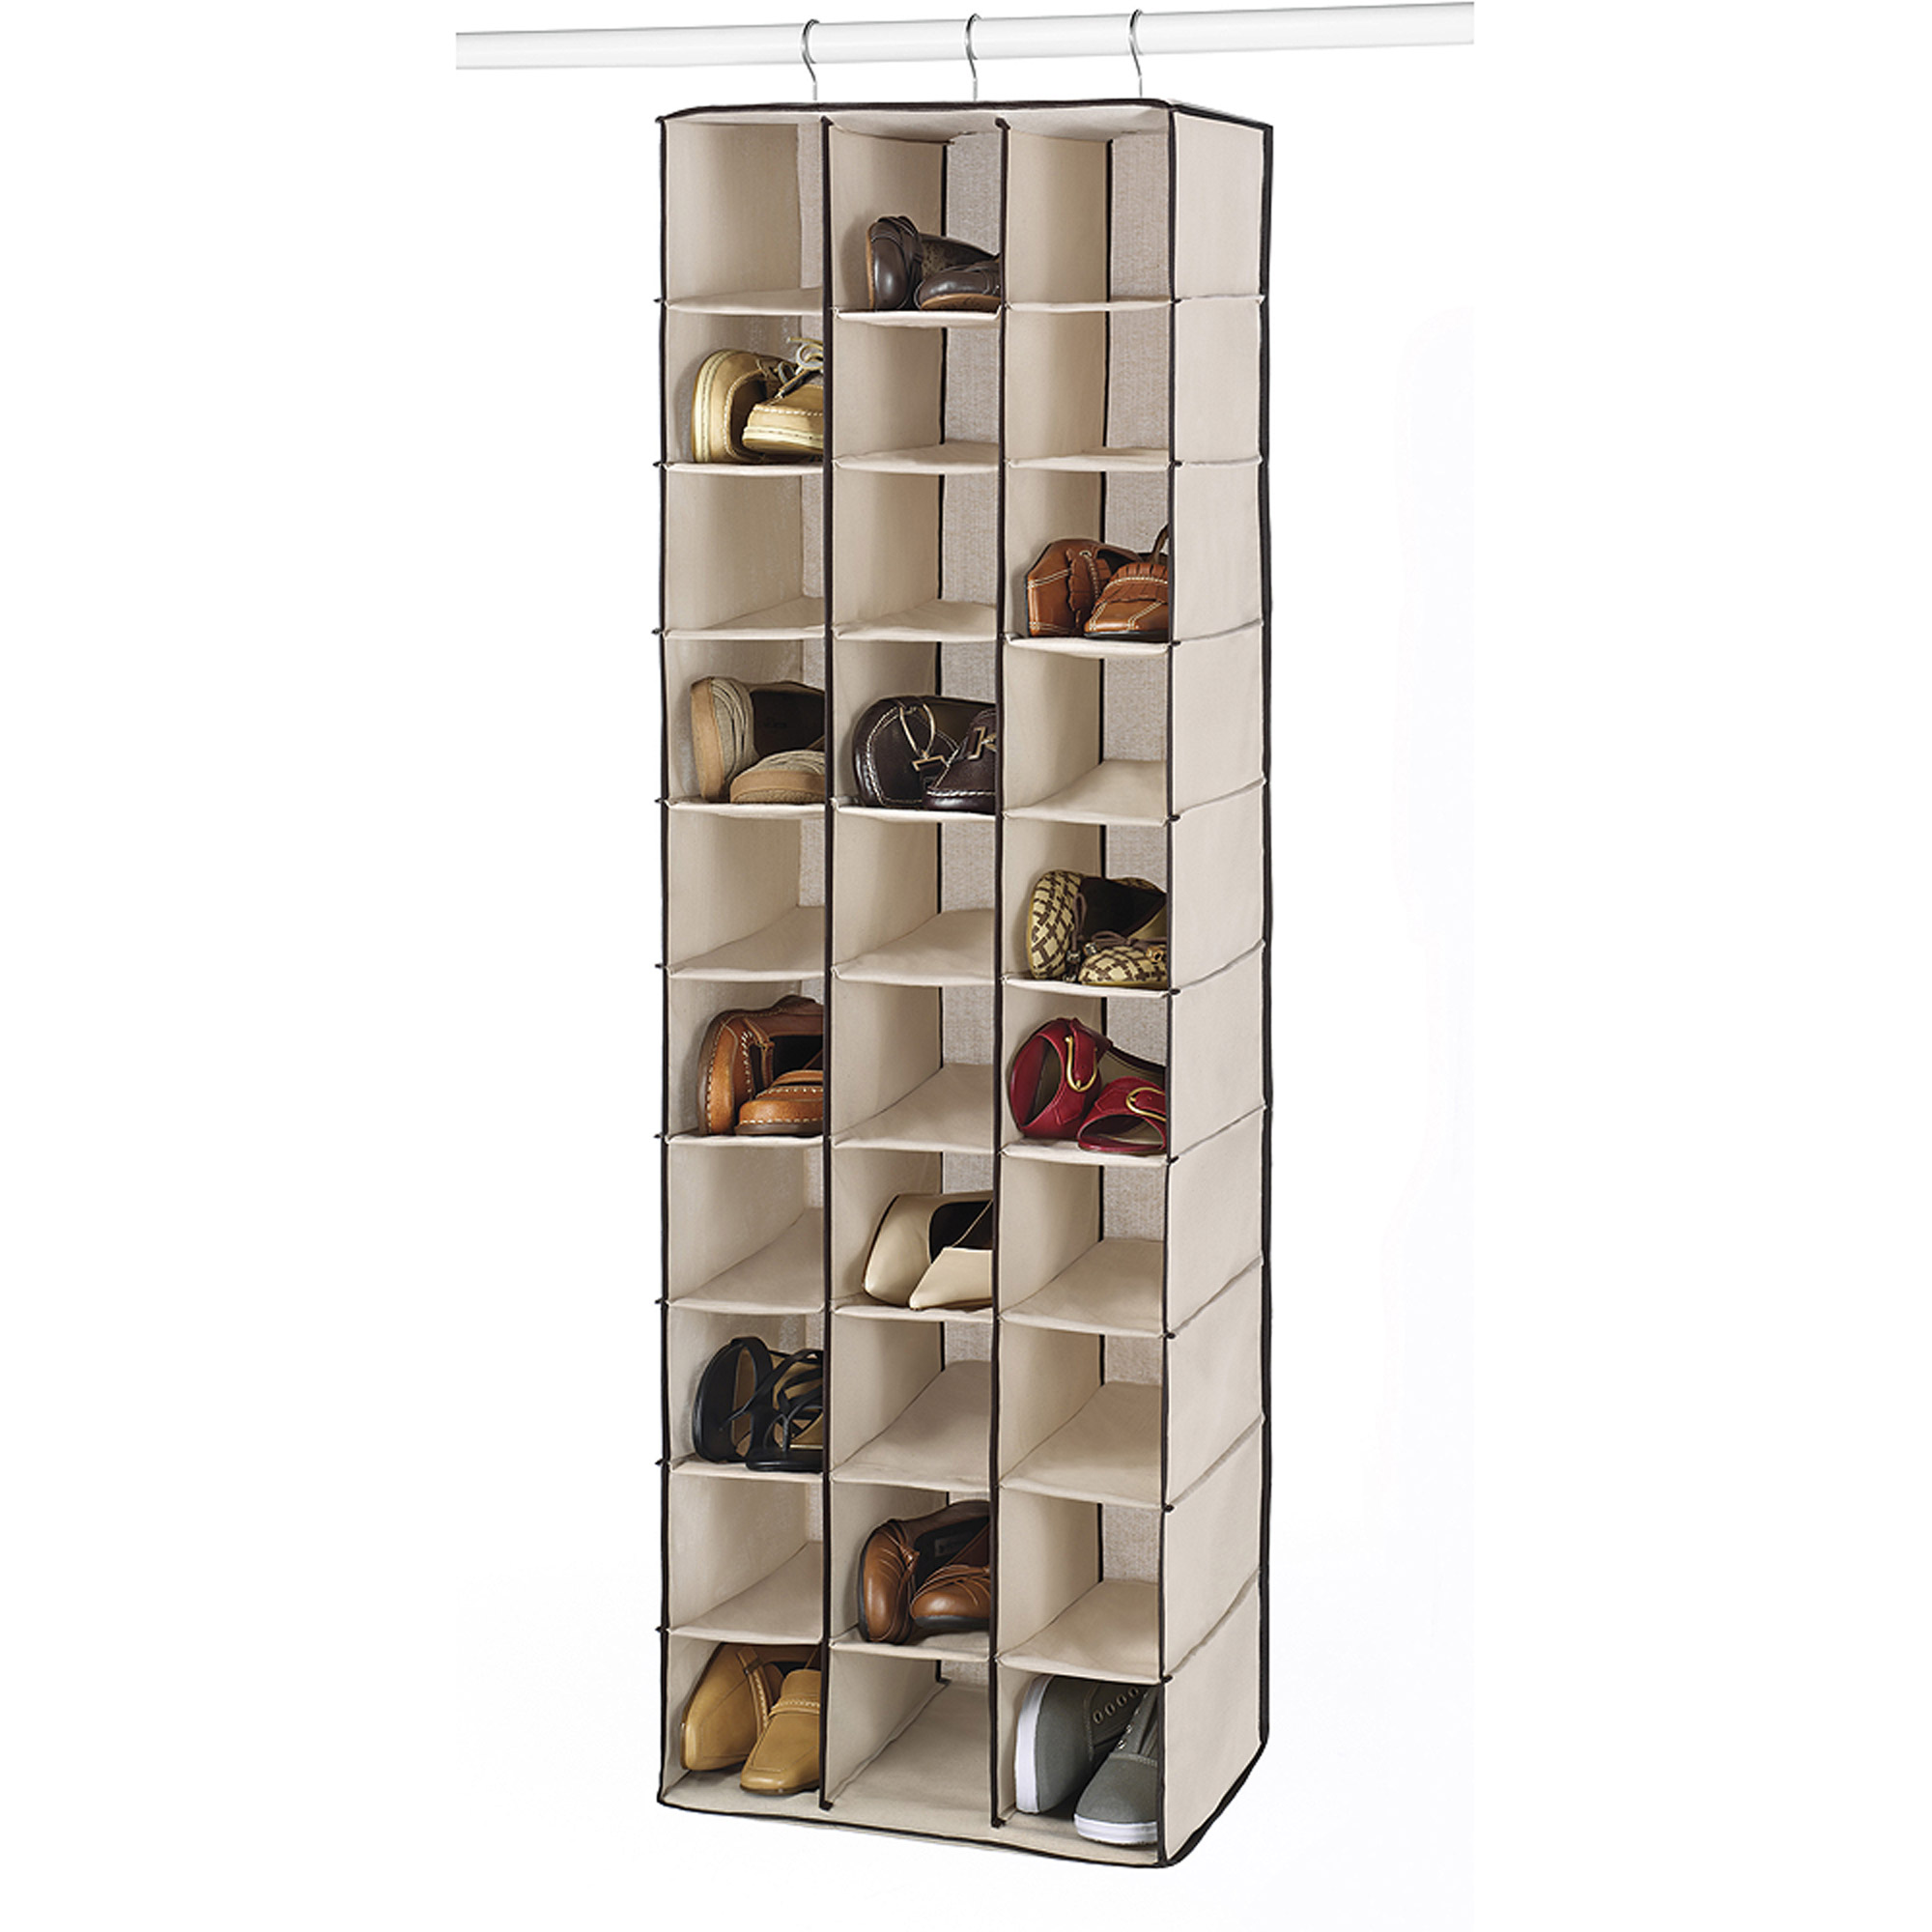 Whitmor 30-Section Hanging Shoe Shelves, Tan Espresso by Whitmor Inc